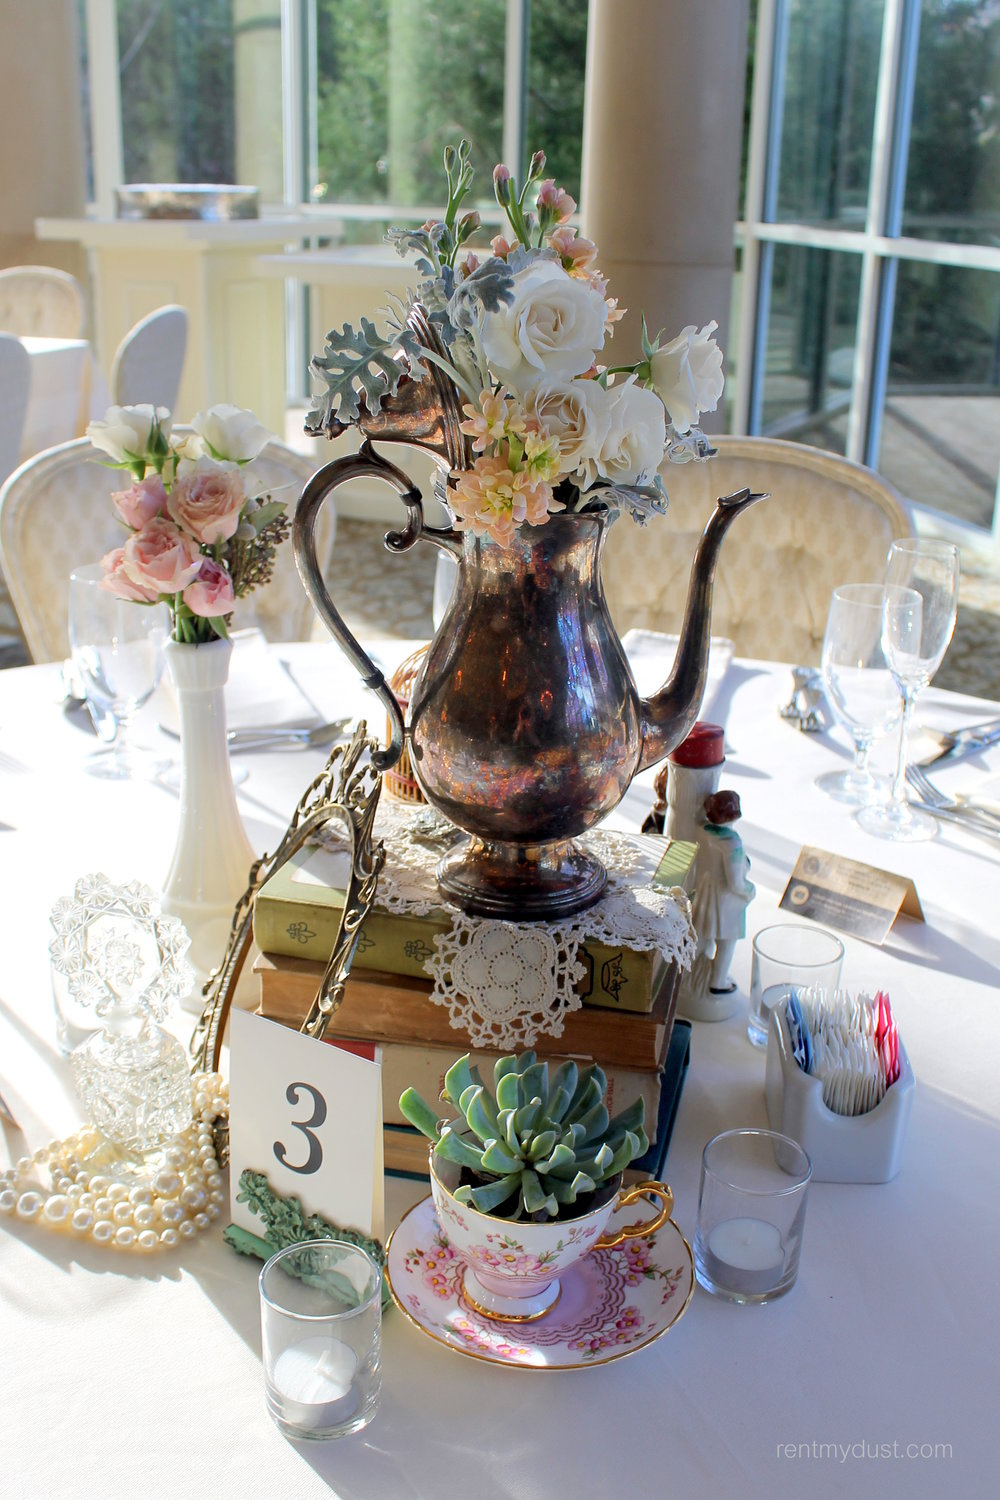 rent my dust_tablescape9.jpg